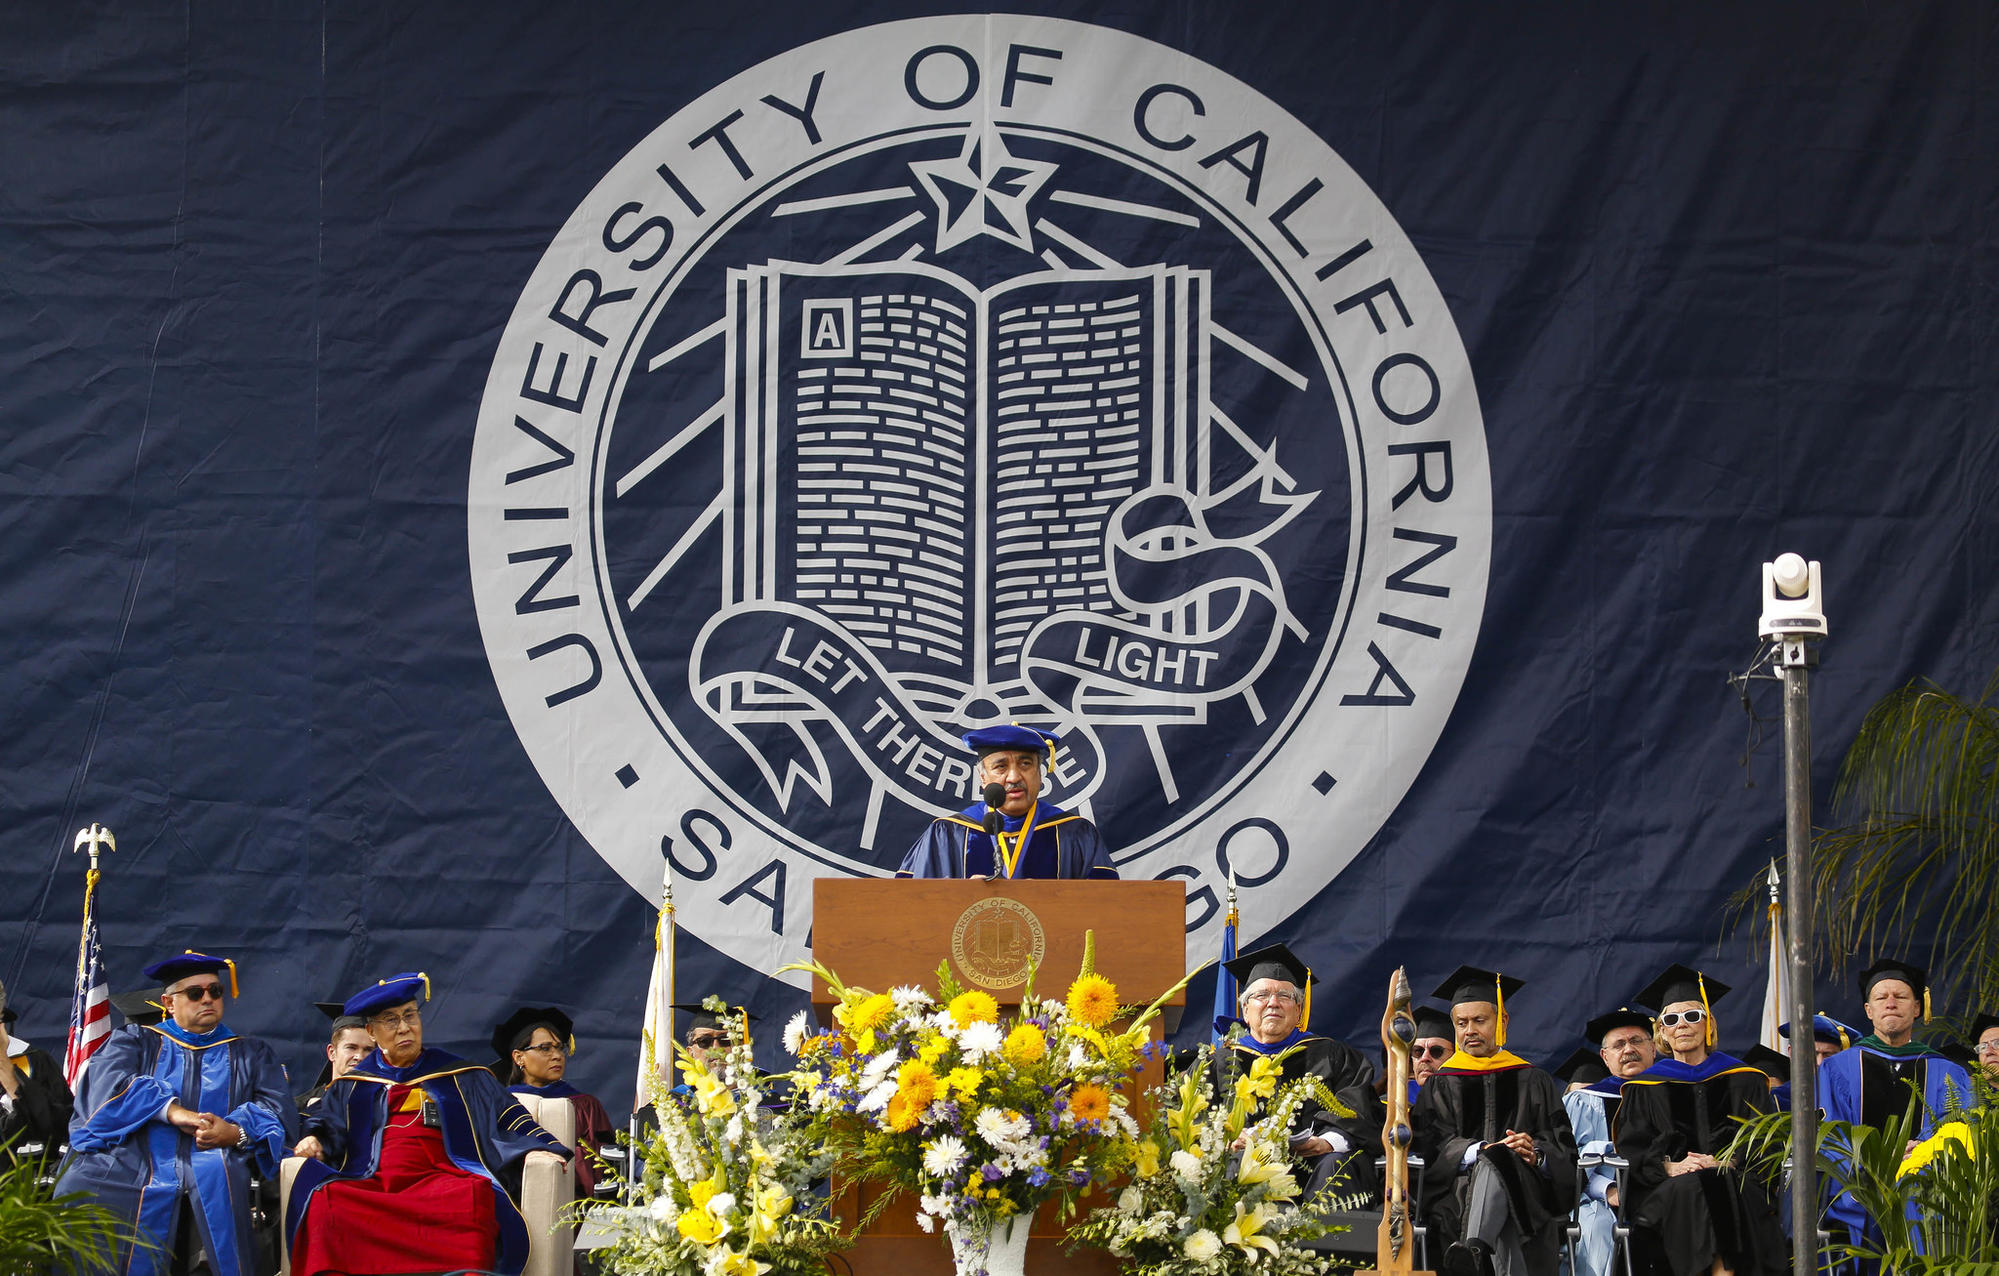 Dalai Lama speaks at UC San Diego graduation